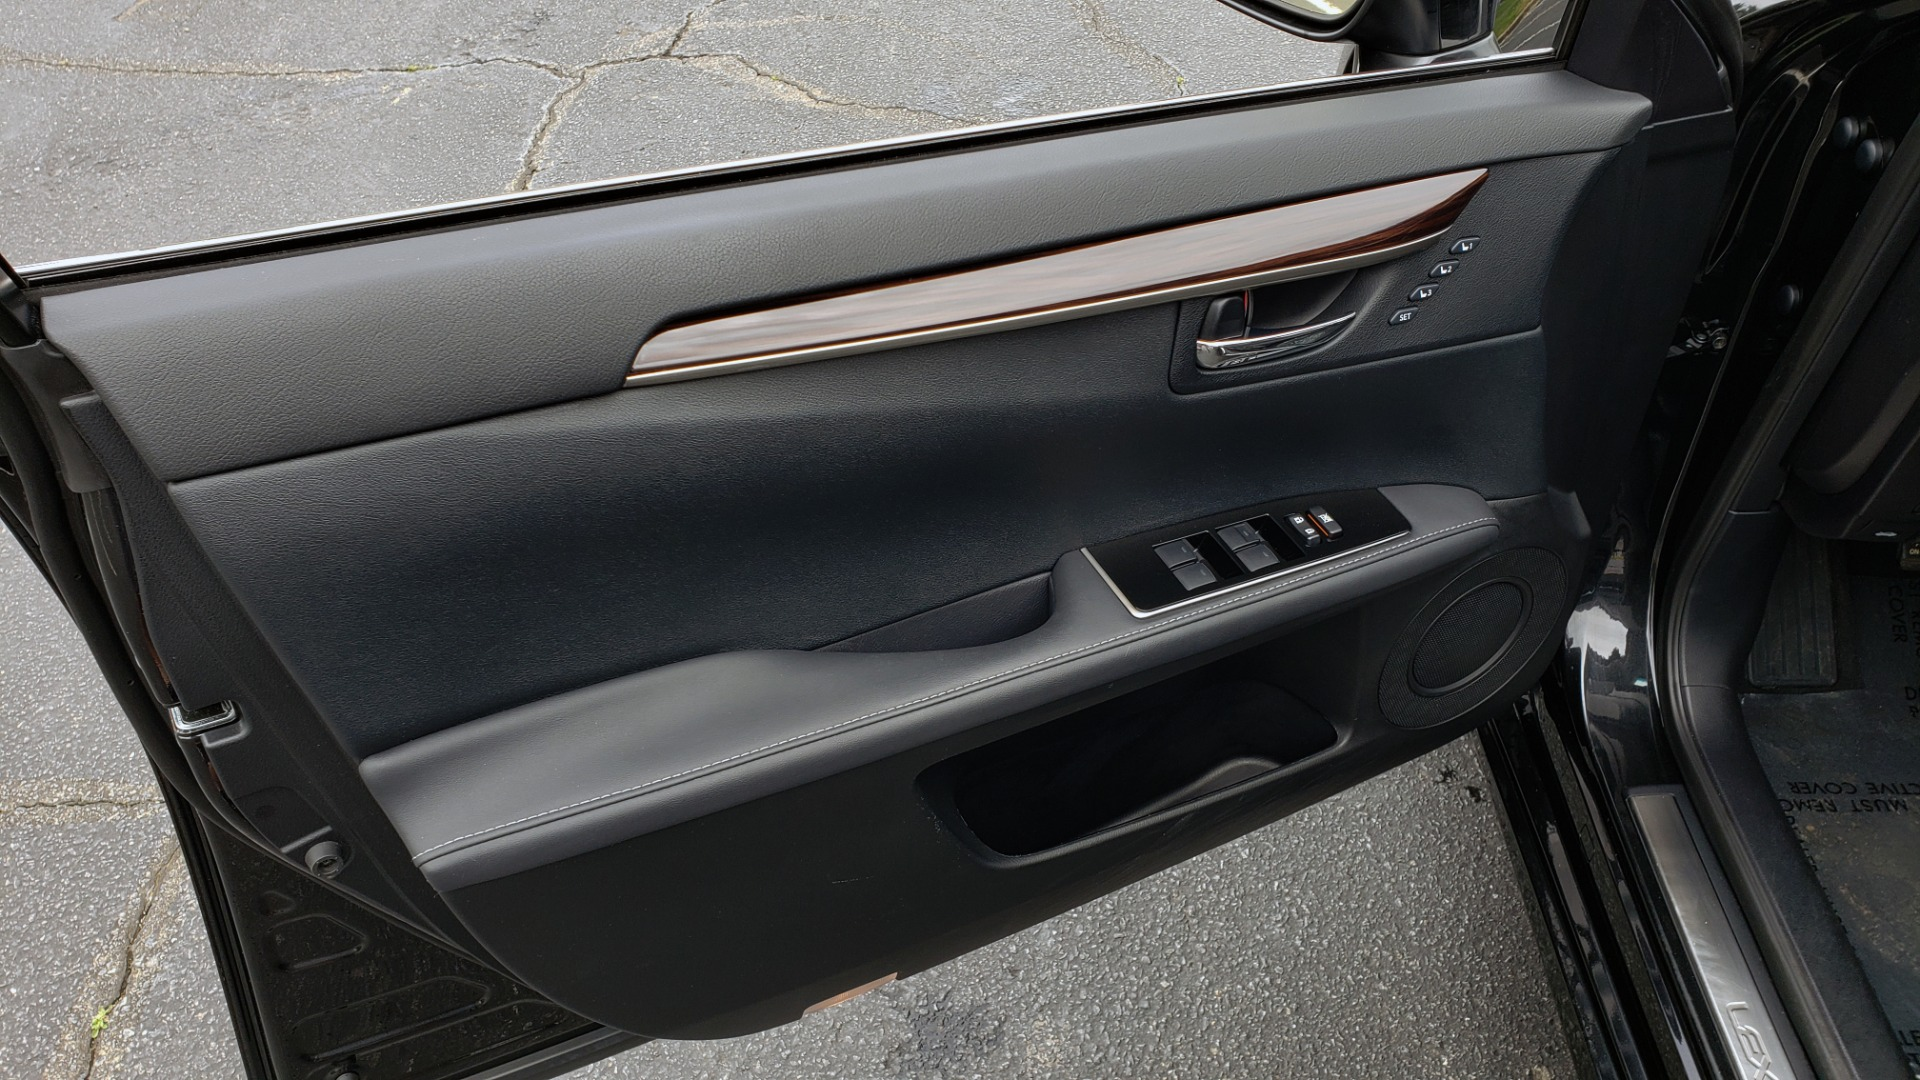 Used 2017 Lexus ES 350 PREMIUM / SUNROOF / PARK ASST / BSM / VENT SEATS / REARVIEW for sale Sold at Formula Imports in Charlotte NC 28227 29